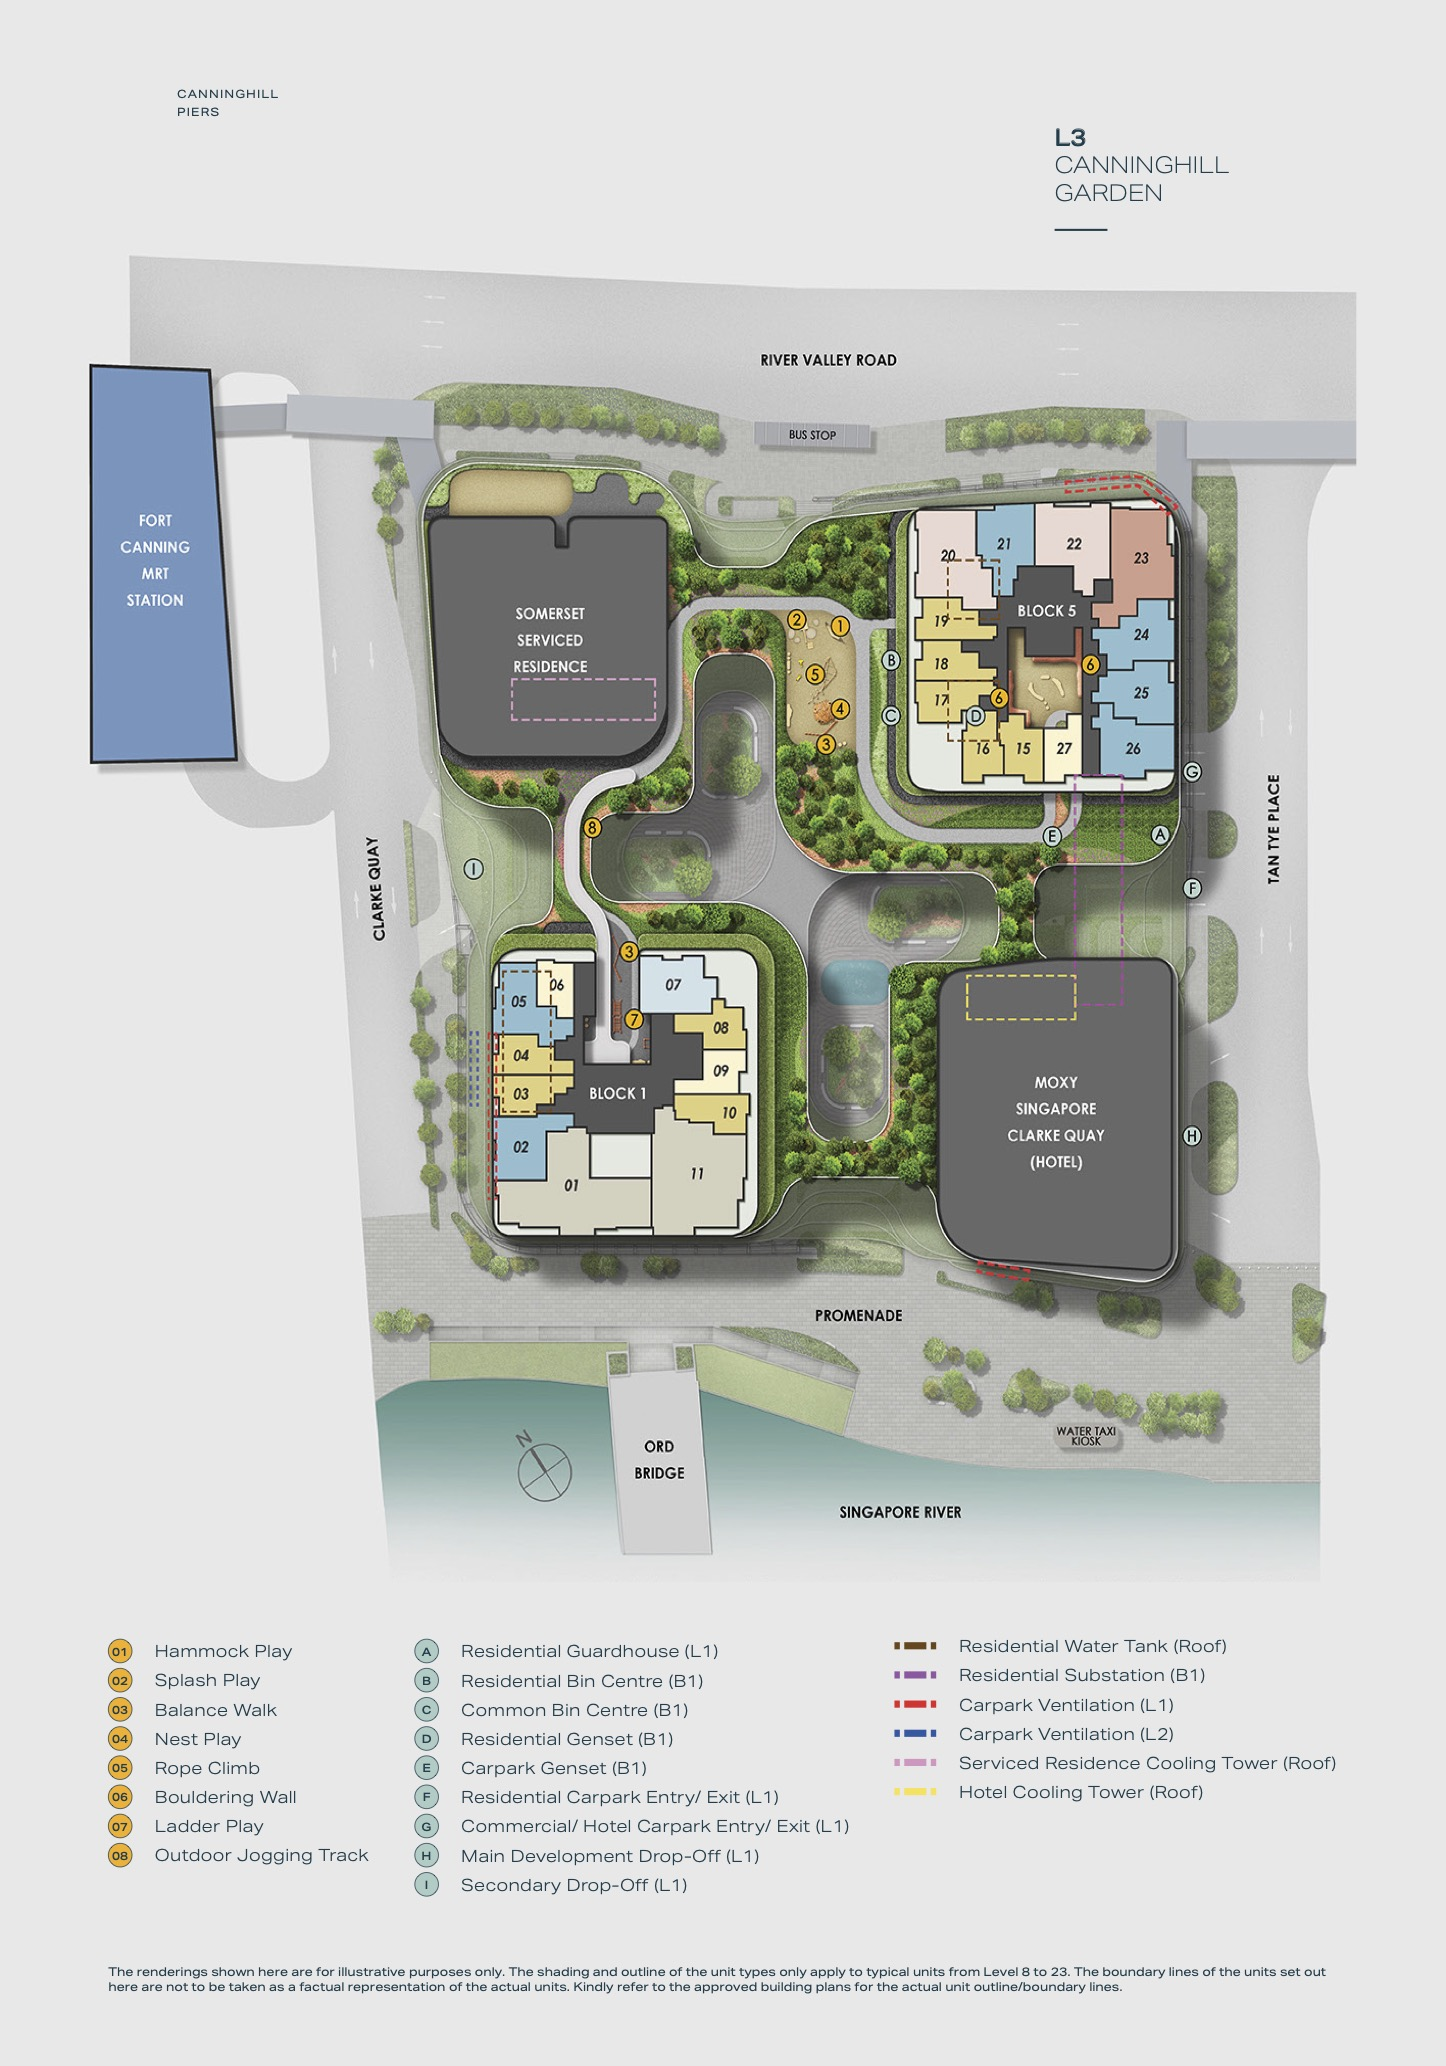 Canninghill Piers Site Plan 3